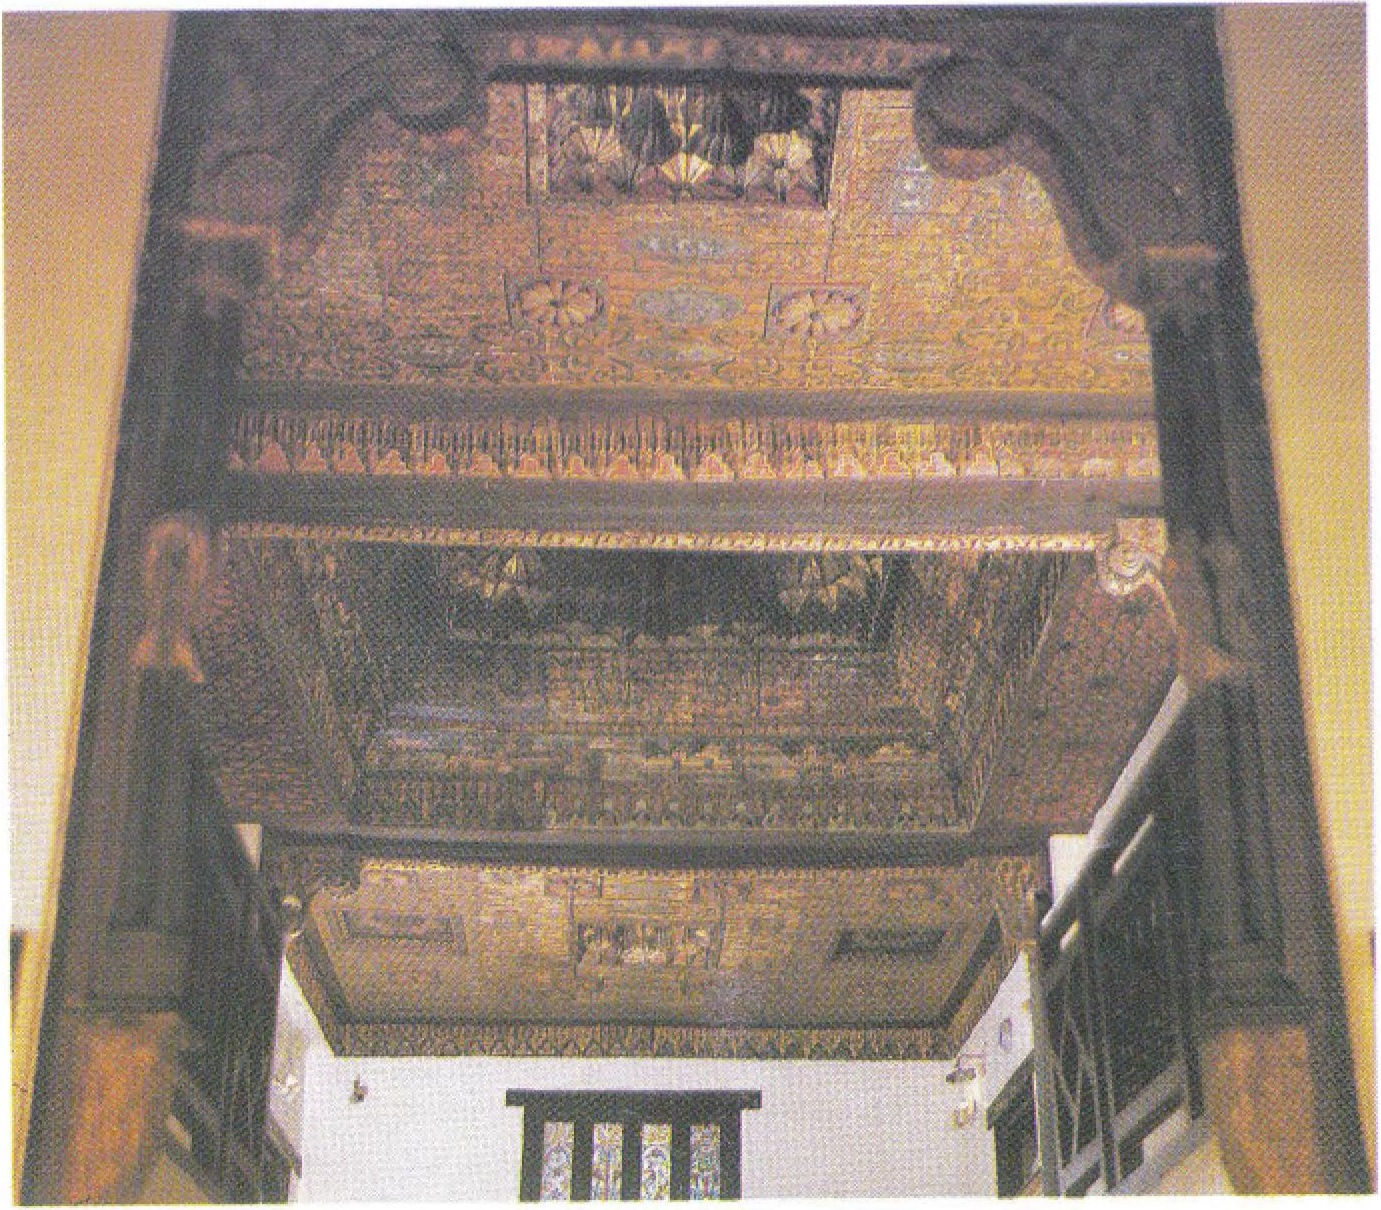 The intricately carved wooden ceiling of the Old Wing of the Coptic Museum is in itself a work of art.